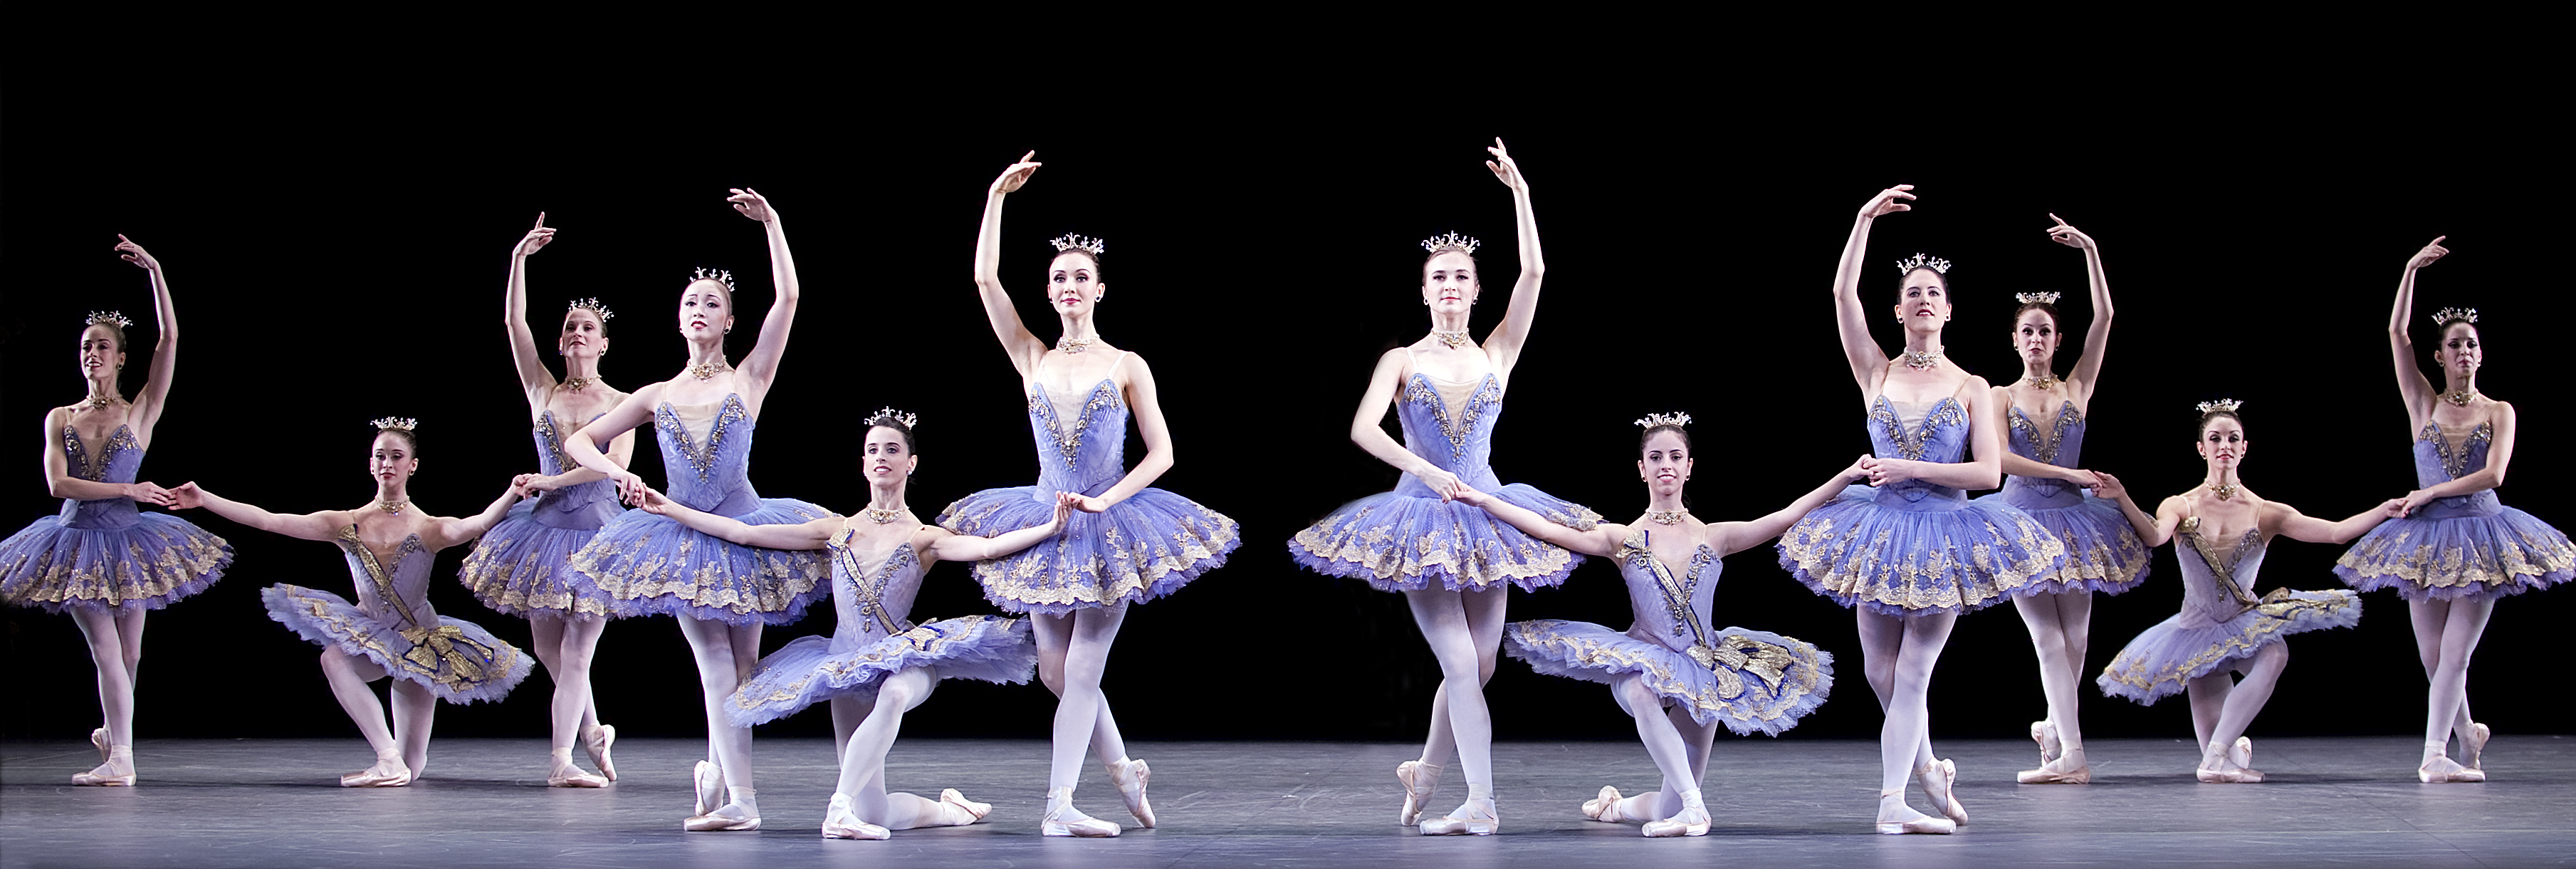 dancers in white tutus on stage